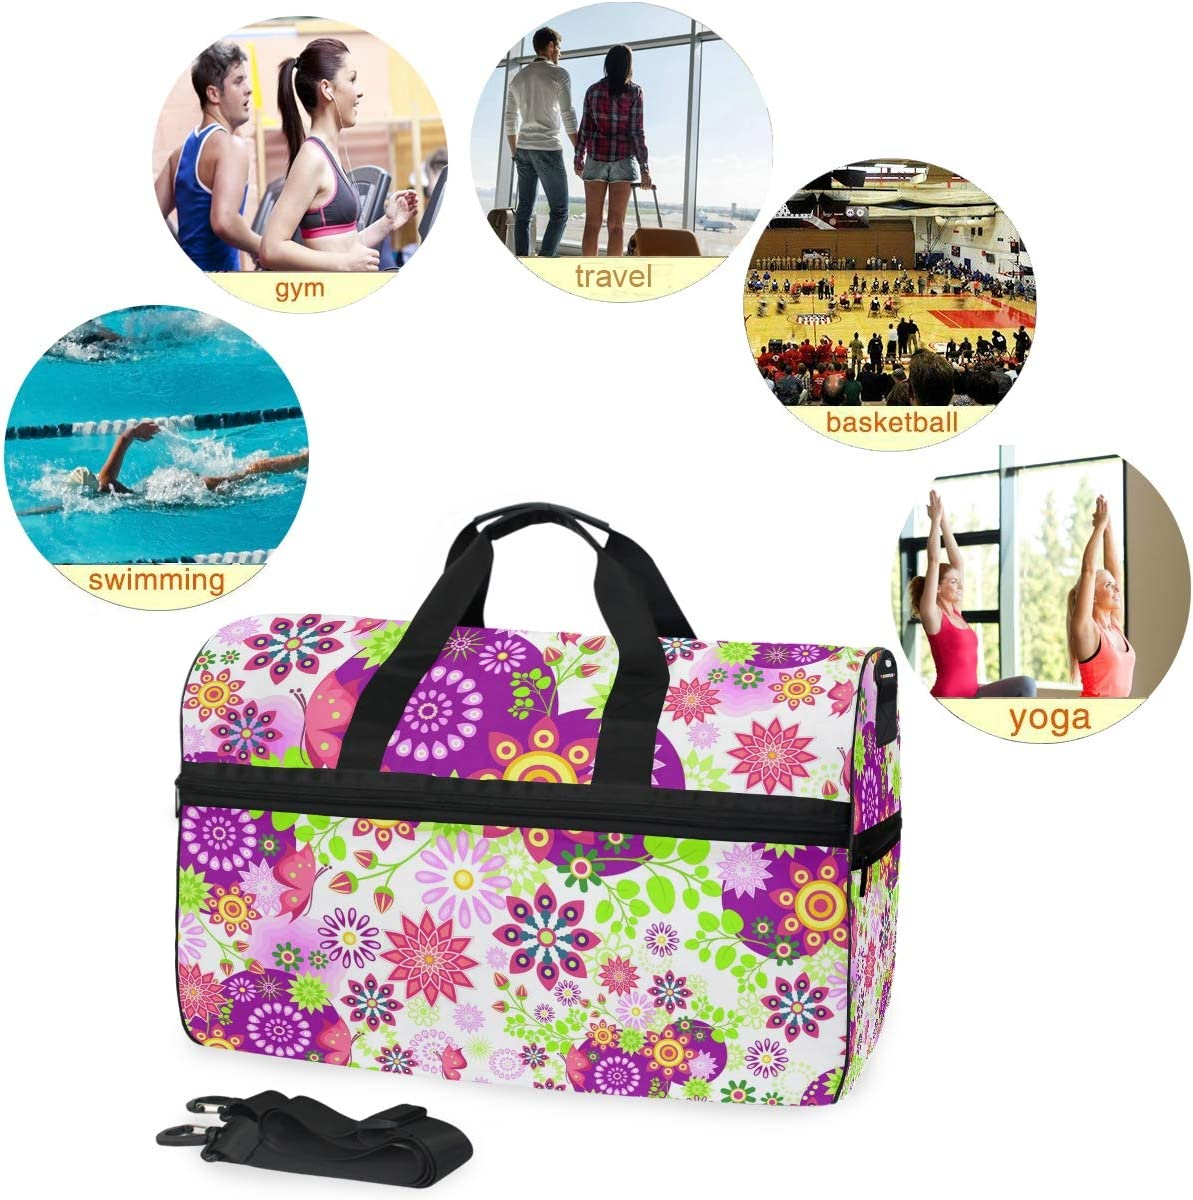 WIHVE Travel Duffel Bag Floral Colorful Gym Bag With Shoes Compartment